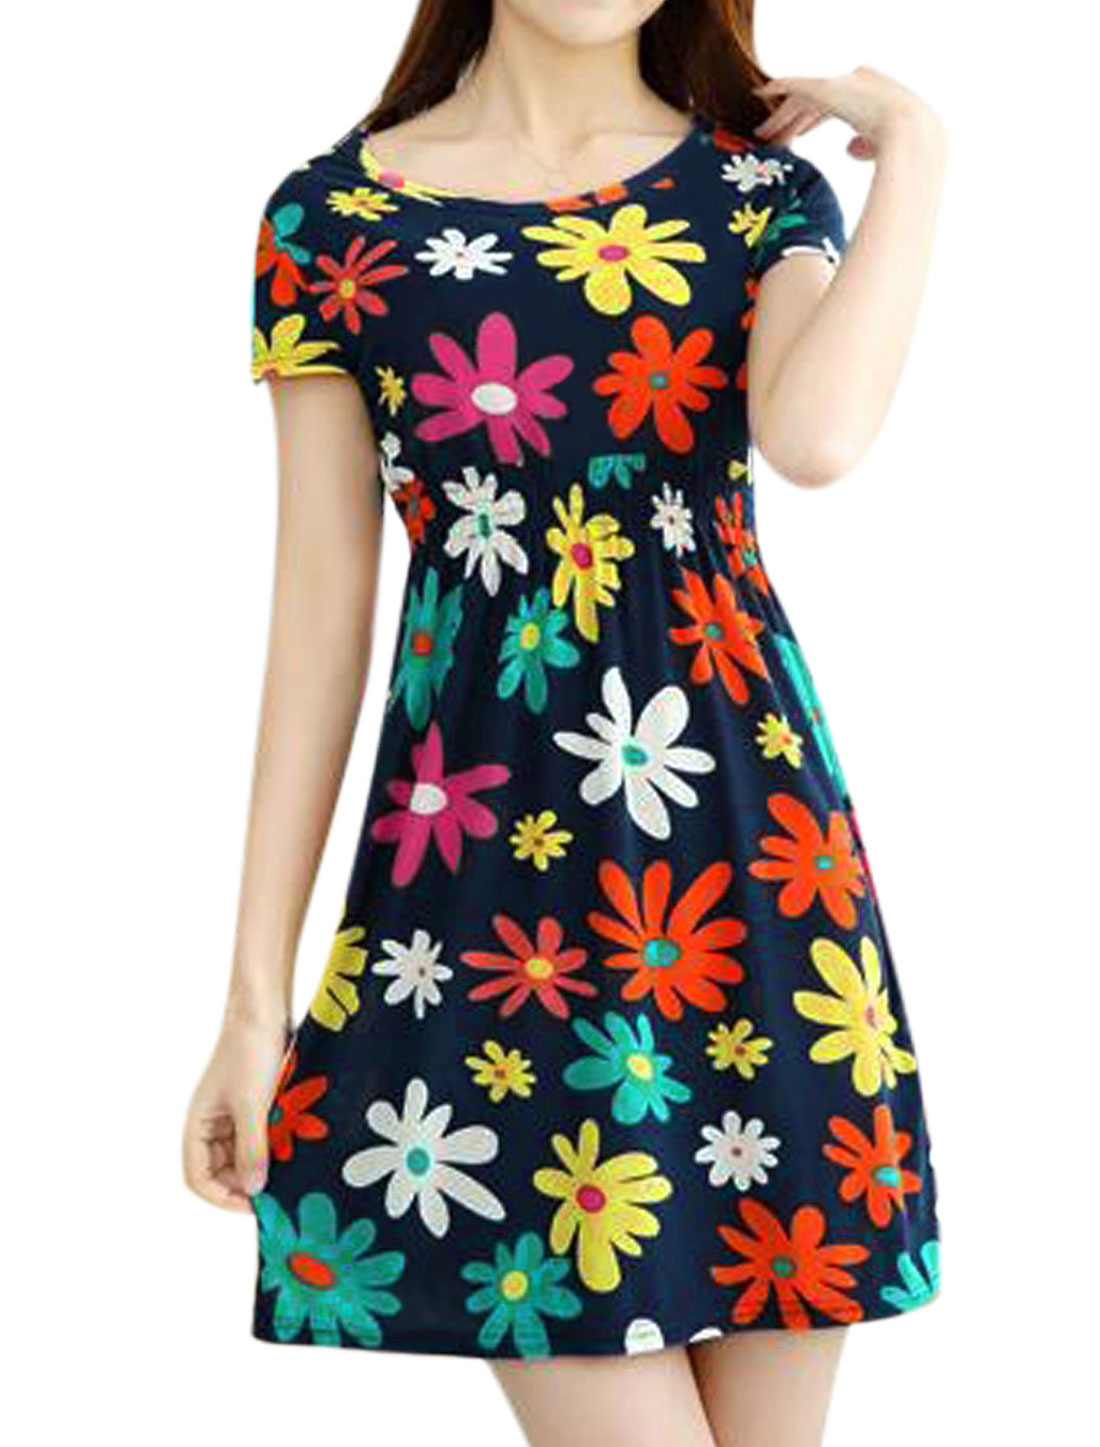 Lady Floral Prints Slipover Slim Fit Casual Summer A Line Dress Navy Blue XS